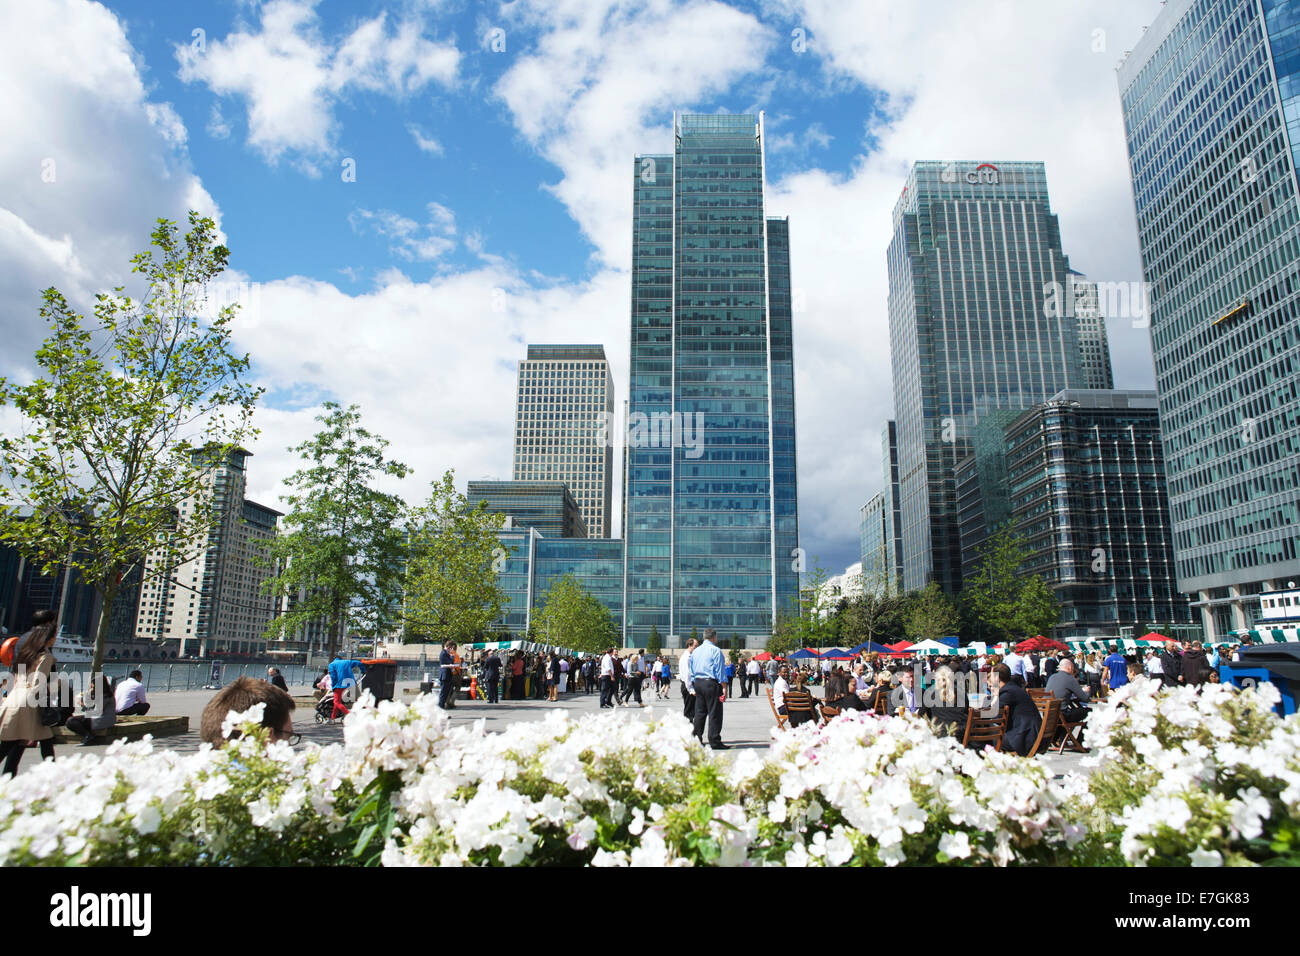 Docklands Canary Wharf, London, England, UK - a street food lunch time market. - Stock Image